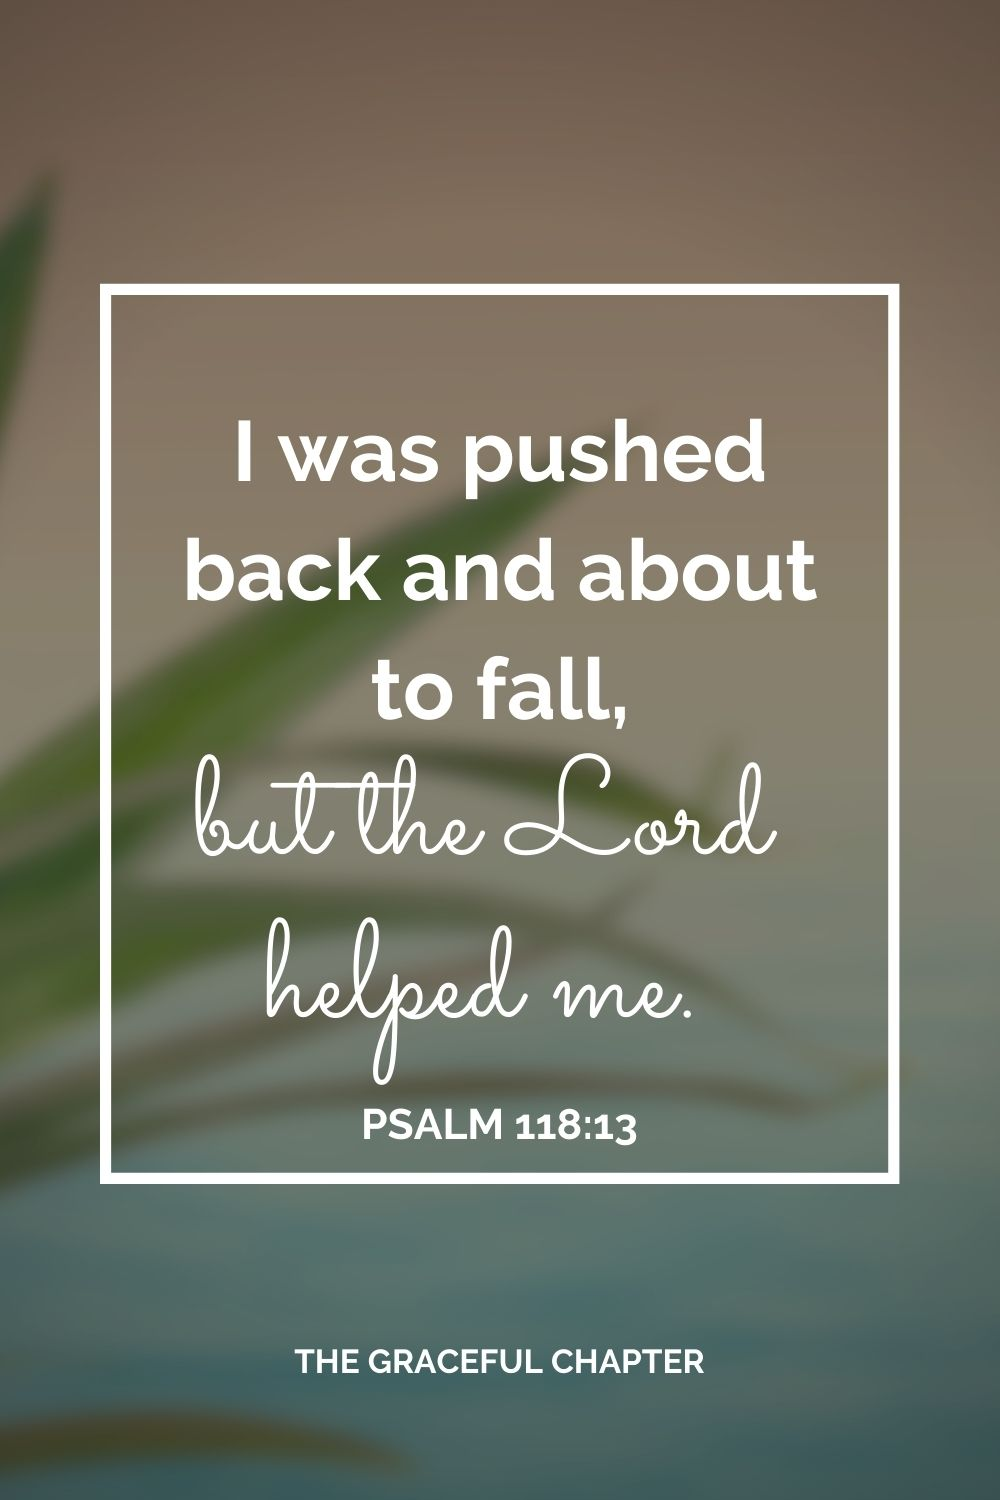 I was pushed back and about to fall, but the Lord helped me. Psalm 118:13